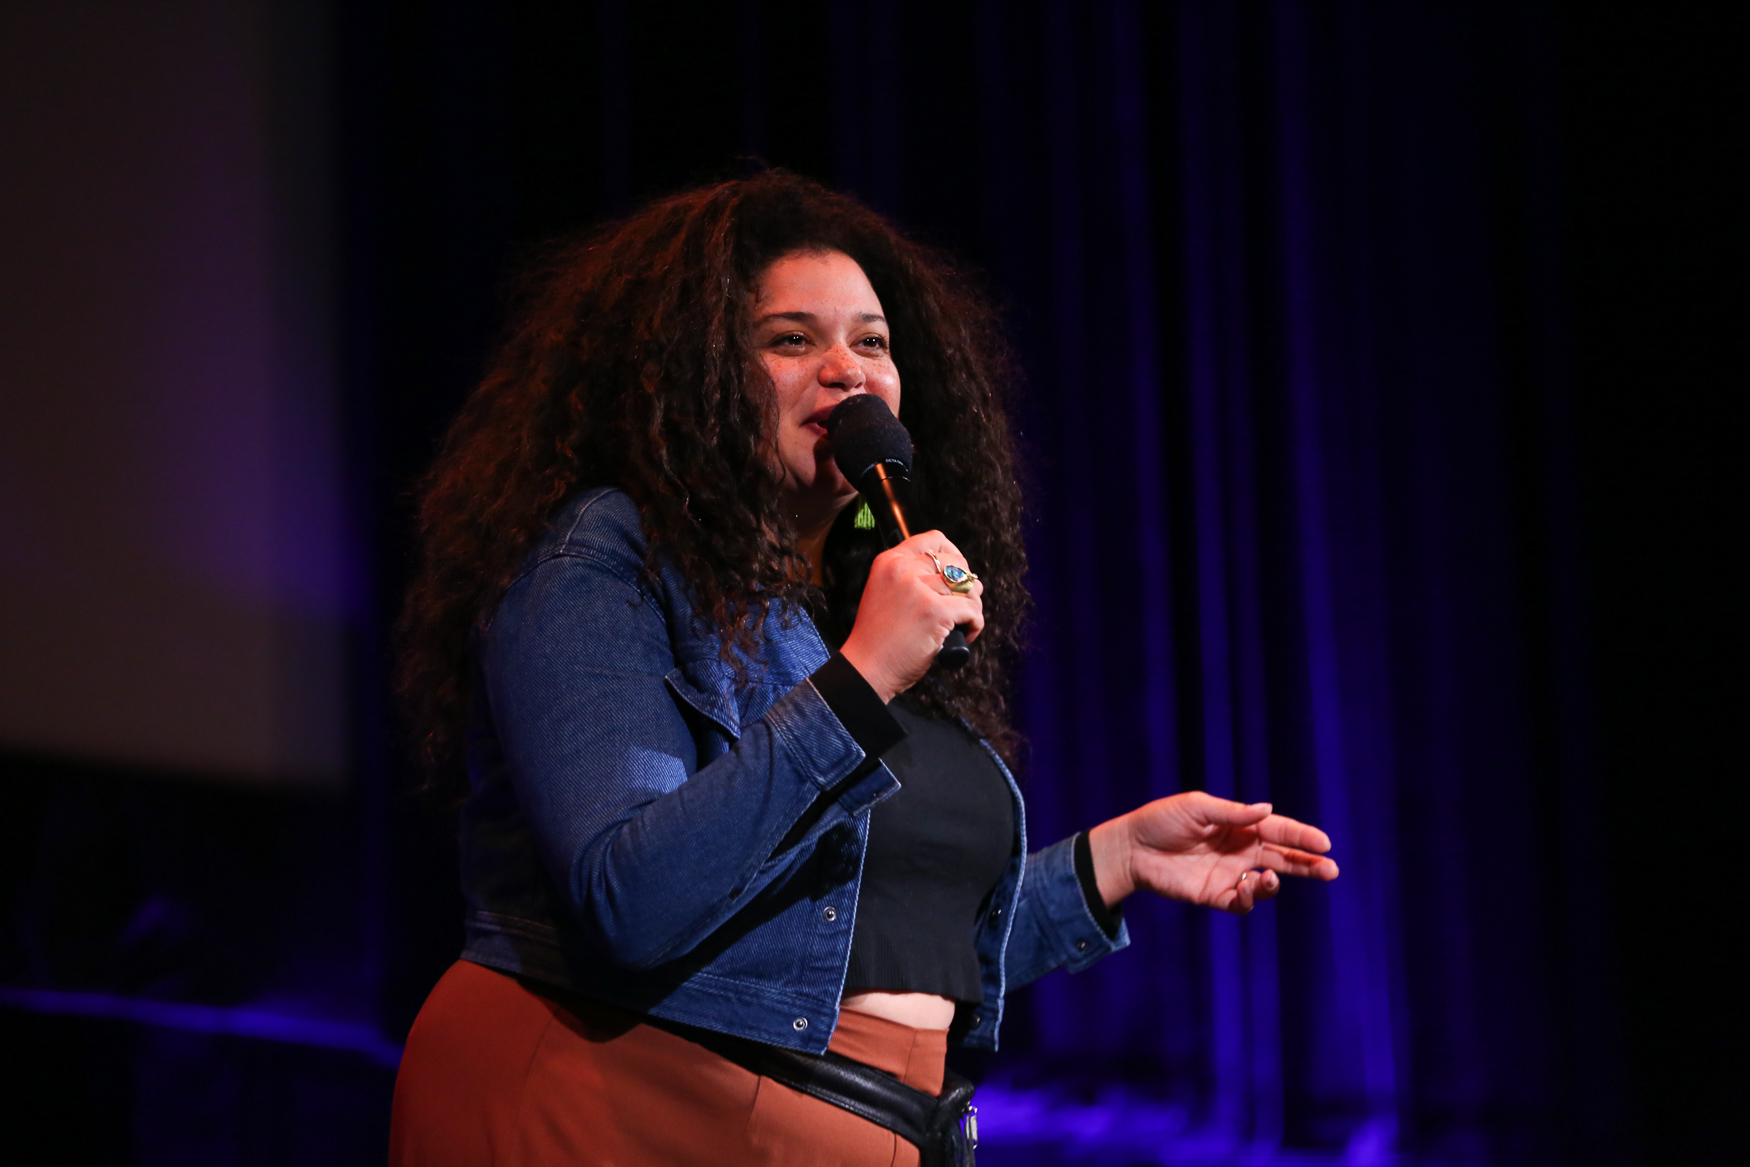 Michelle Buteau{ }performed at The Bentzen Ball on October 28. (Amanda Andrade-Rhoades/DC Refined)